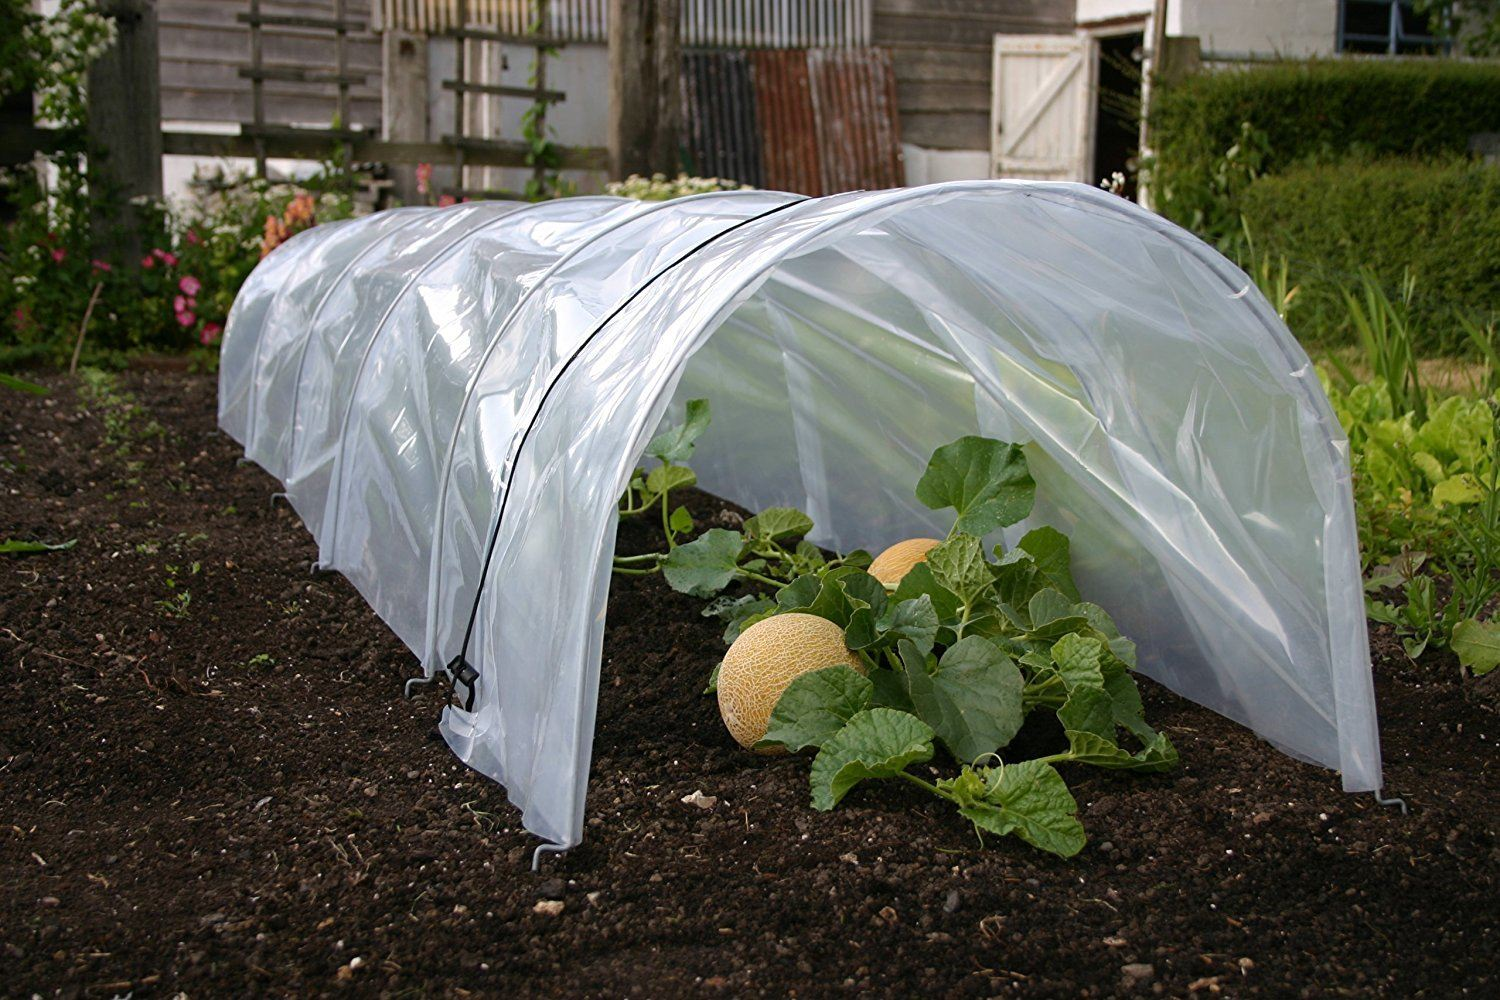 Small polytunnel greenhouse with melons growing inside.